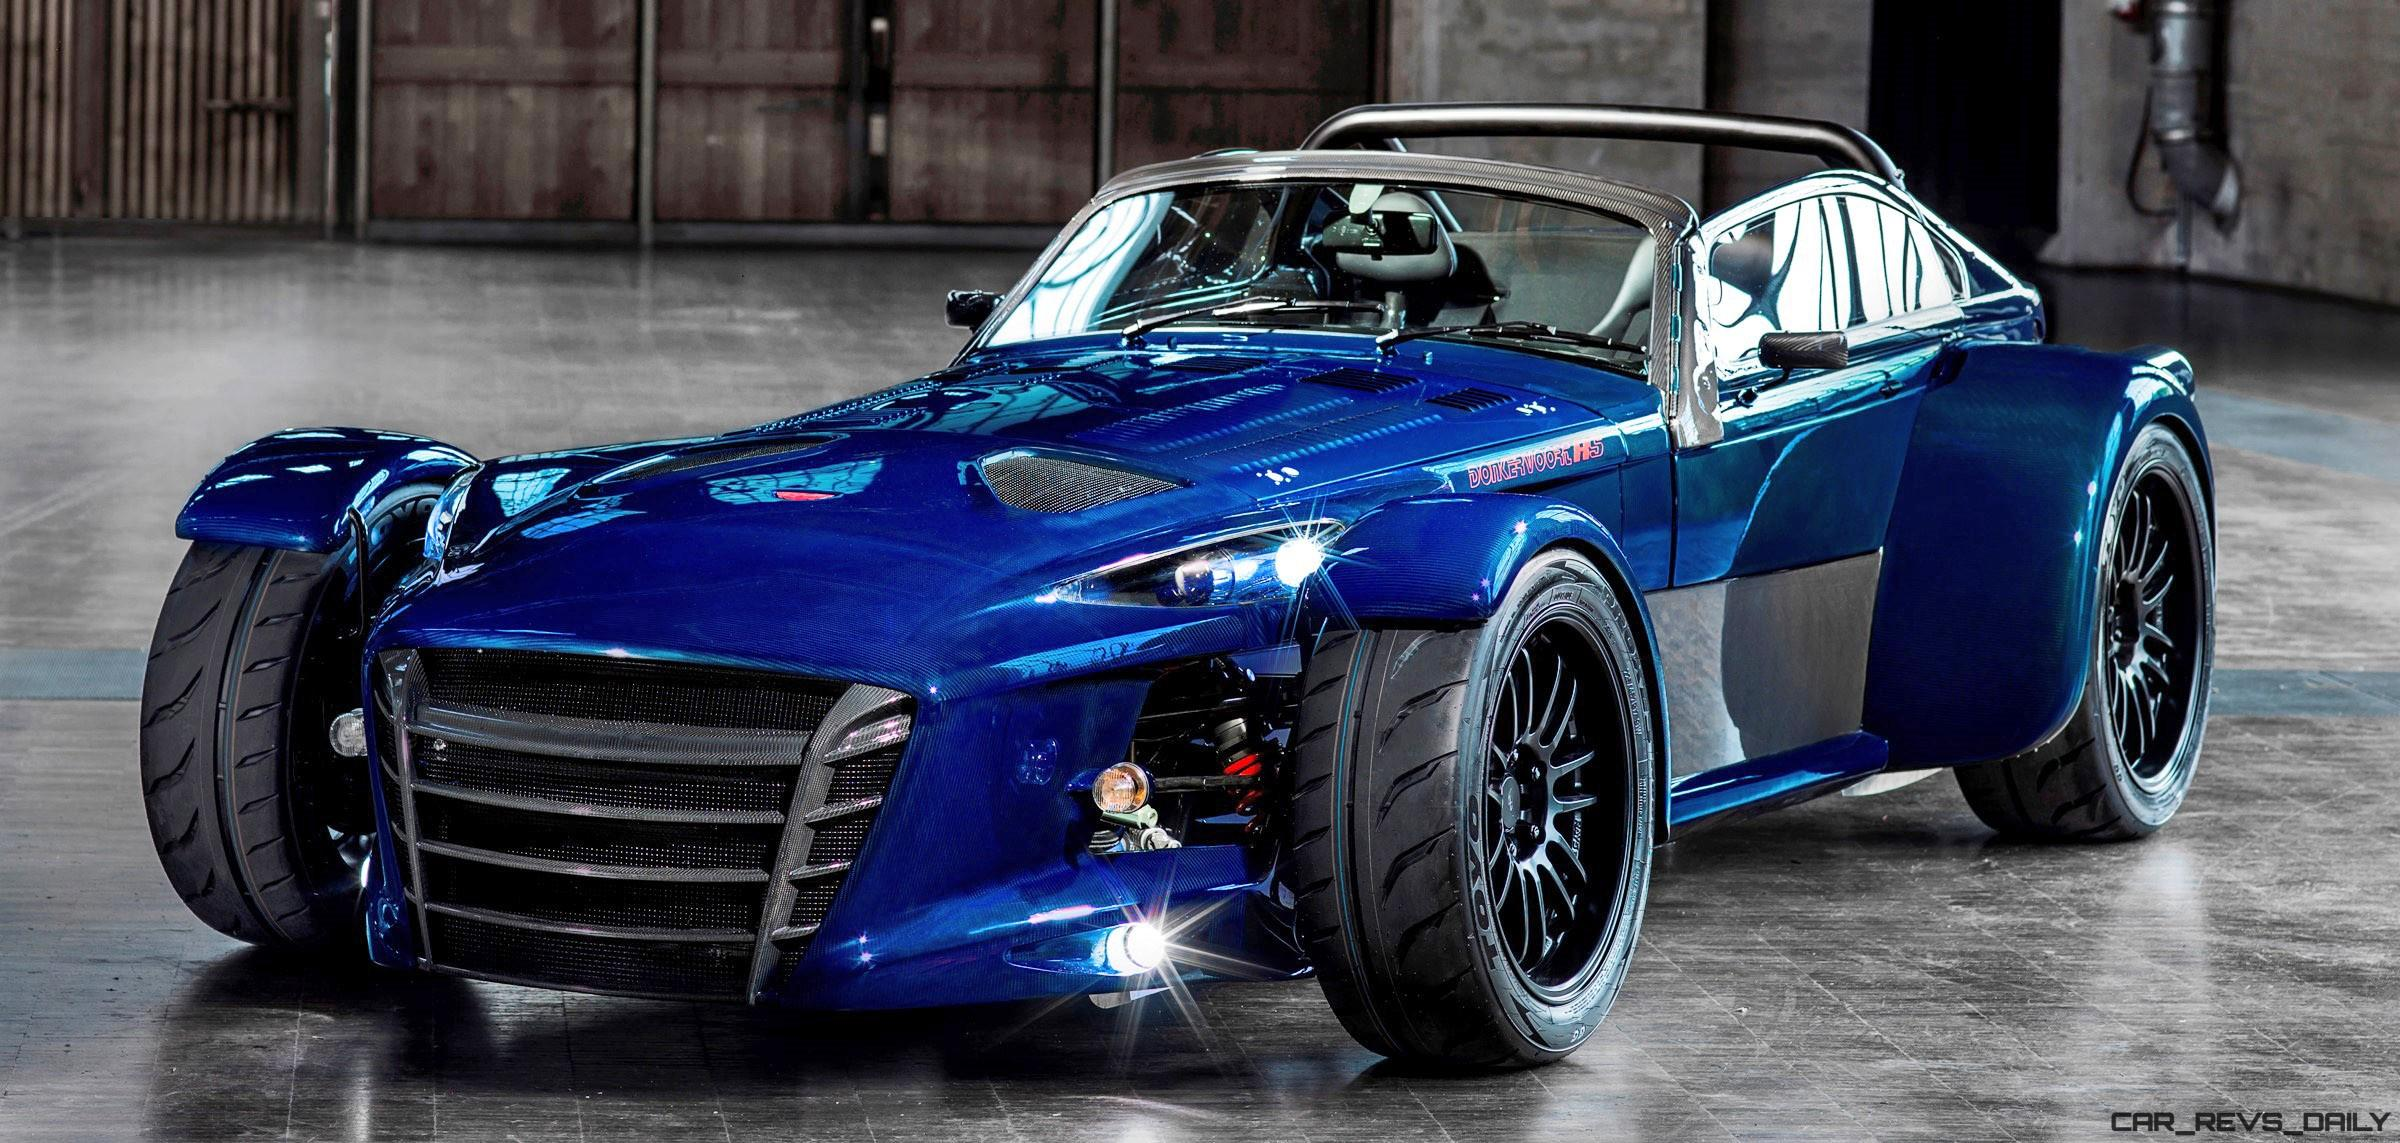 2017 Donkervoort D8 GTO RS Bare Naked Carbon Edition 2 copy